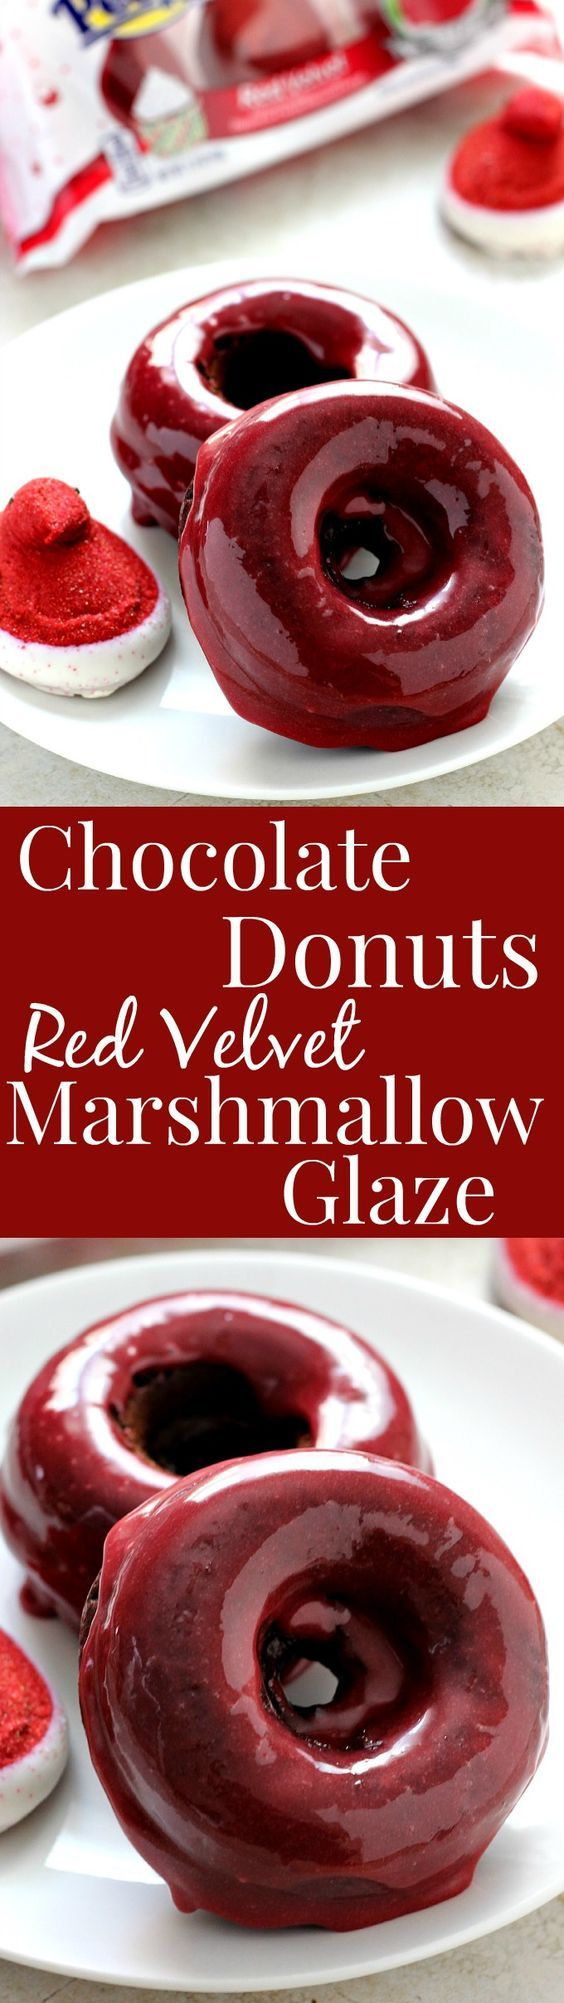 Baked Chocolate Donuts with Red Velvet Marshmallow Glaze - easy yet festive treat for the chocolate and red velvet lovers!